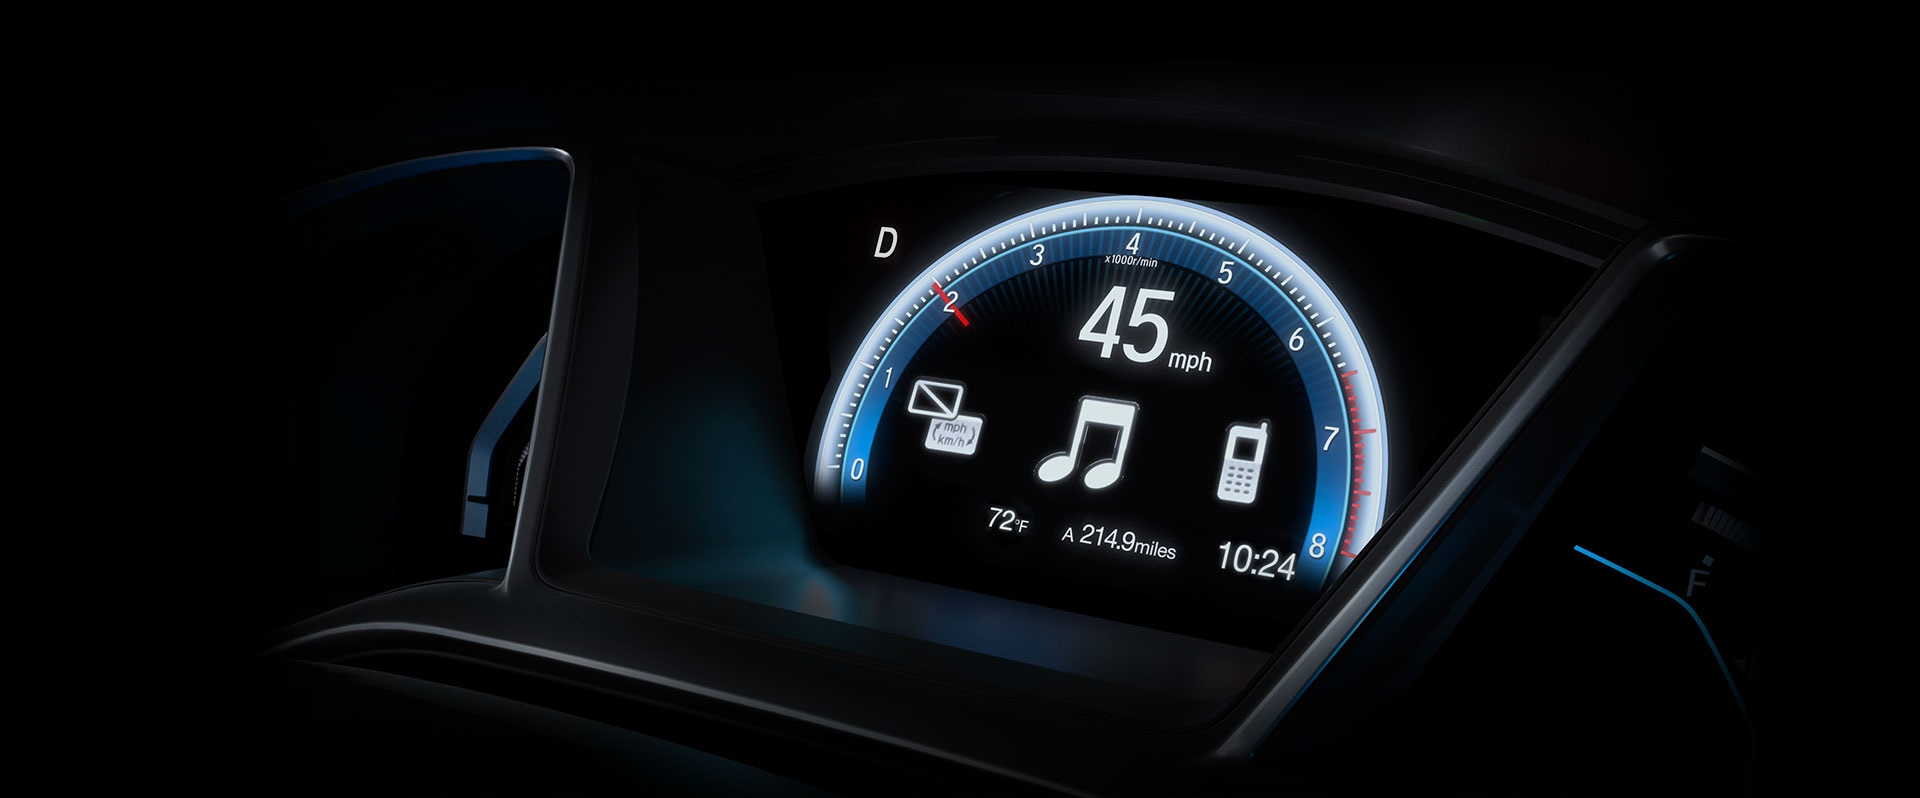 2016-honda-civic-mpg